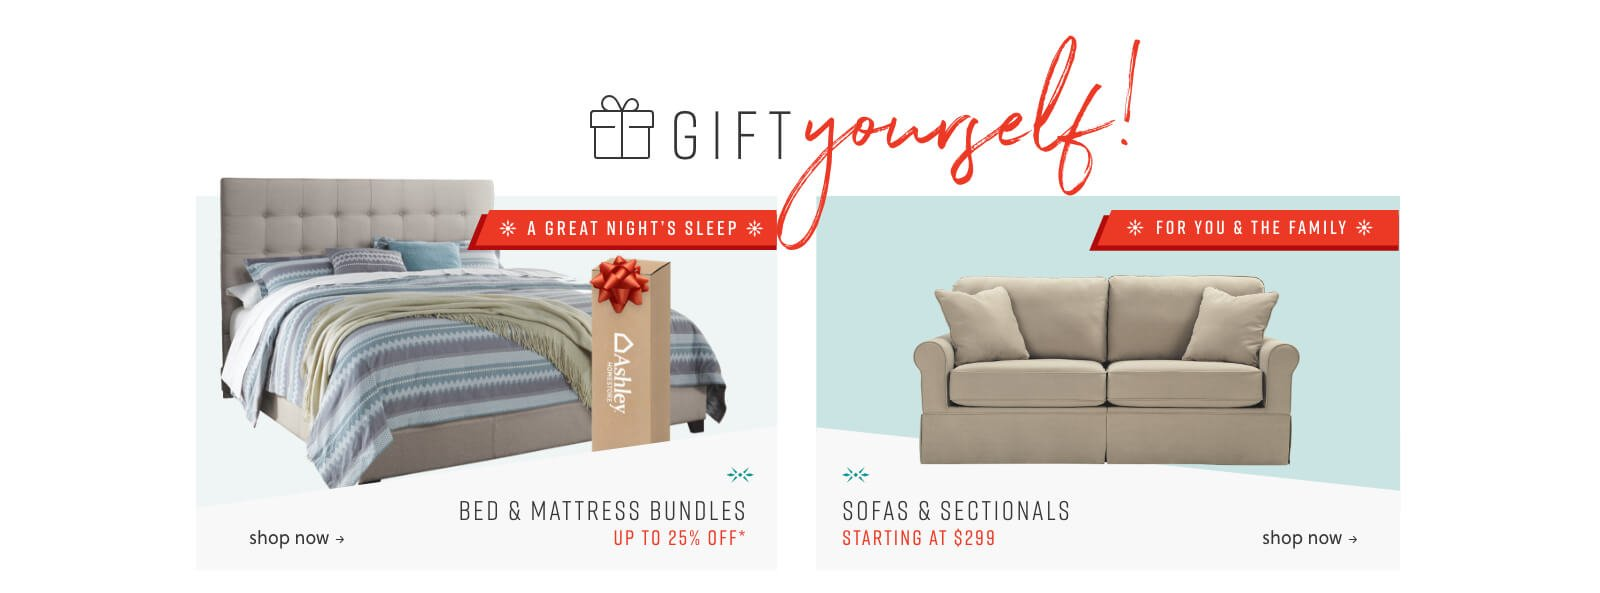 Bed and Mattress Bundles, Sofas and Sectionals